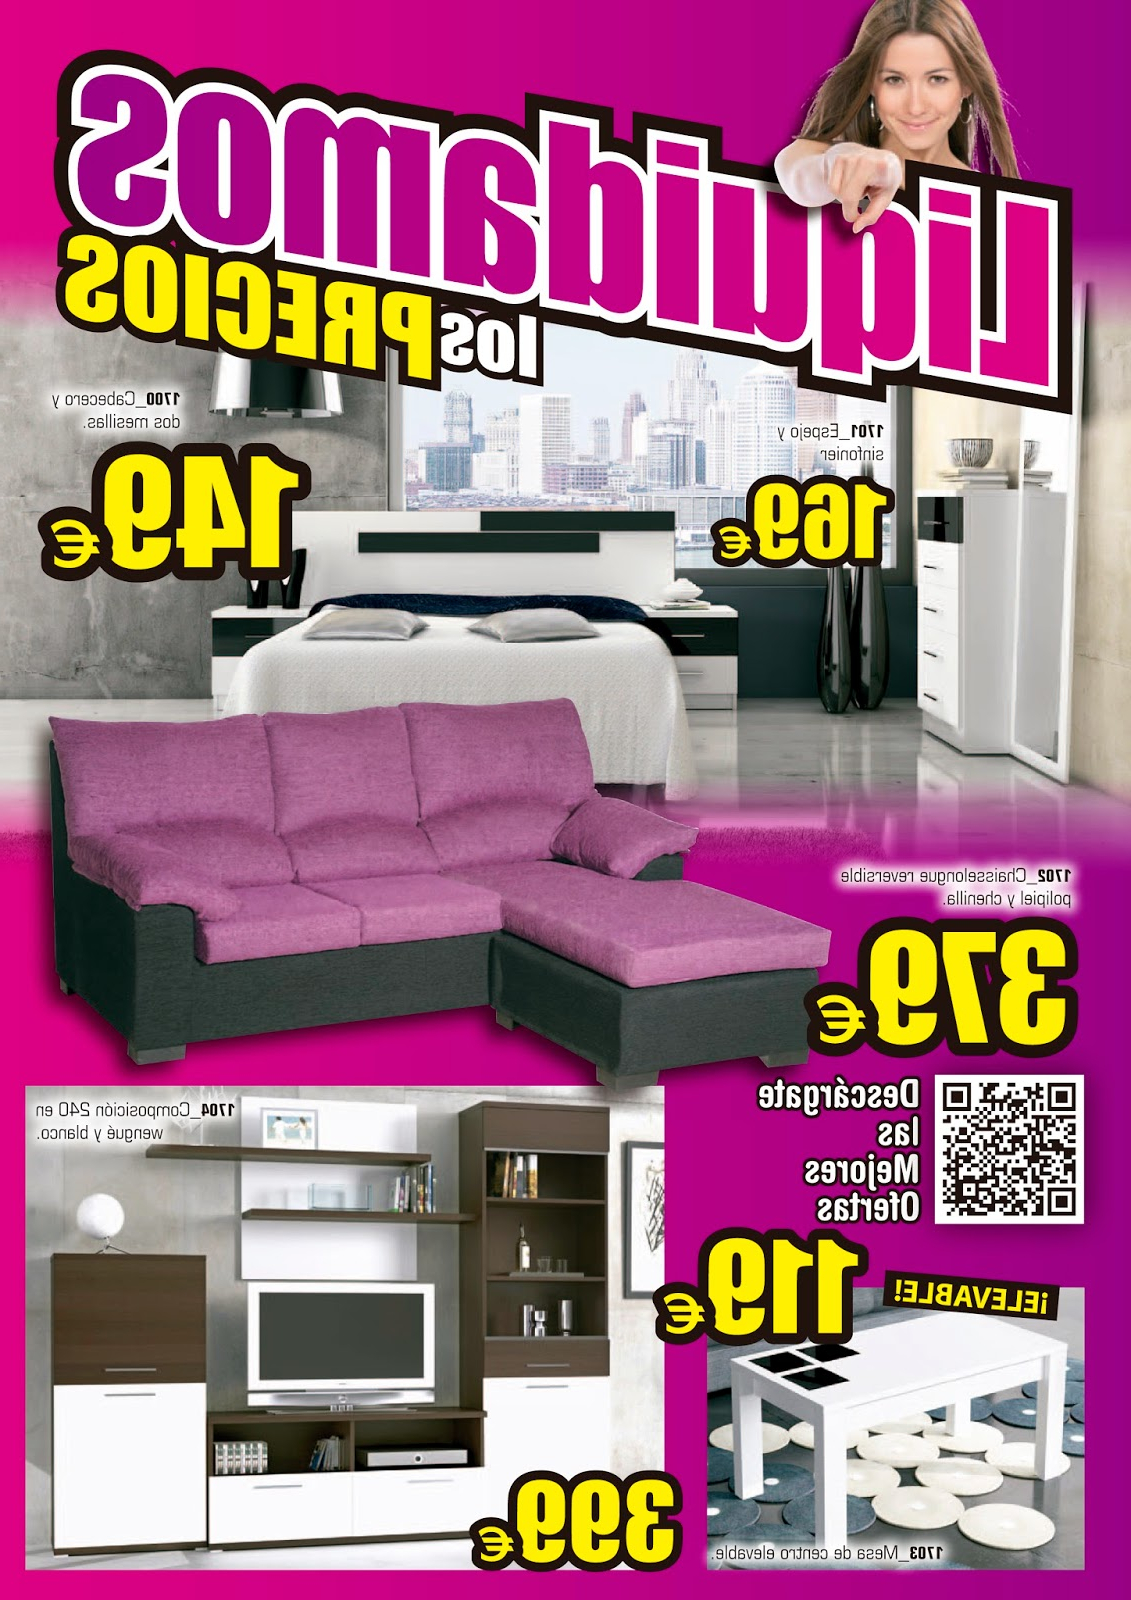 Muebles toscapino Gdd0 Muebles toscapino Folletos